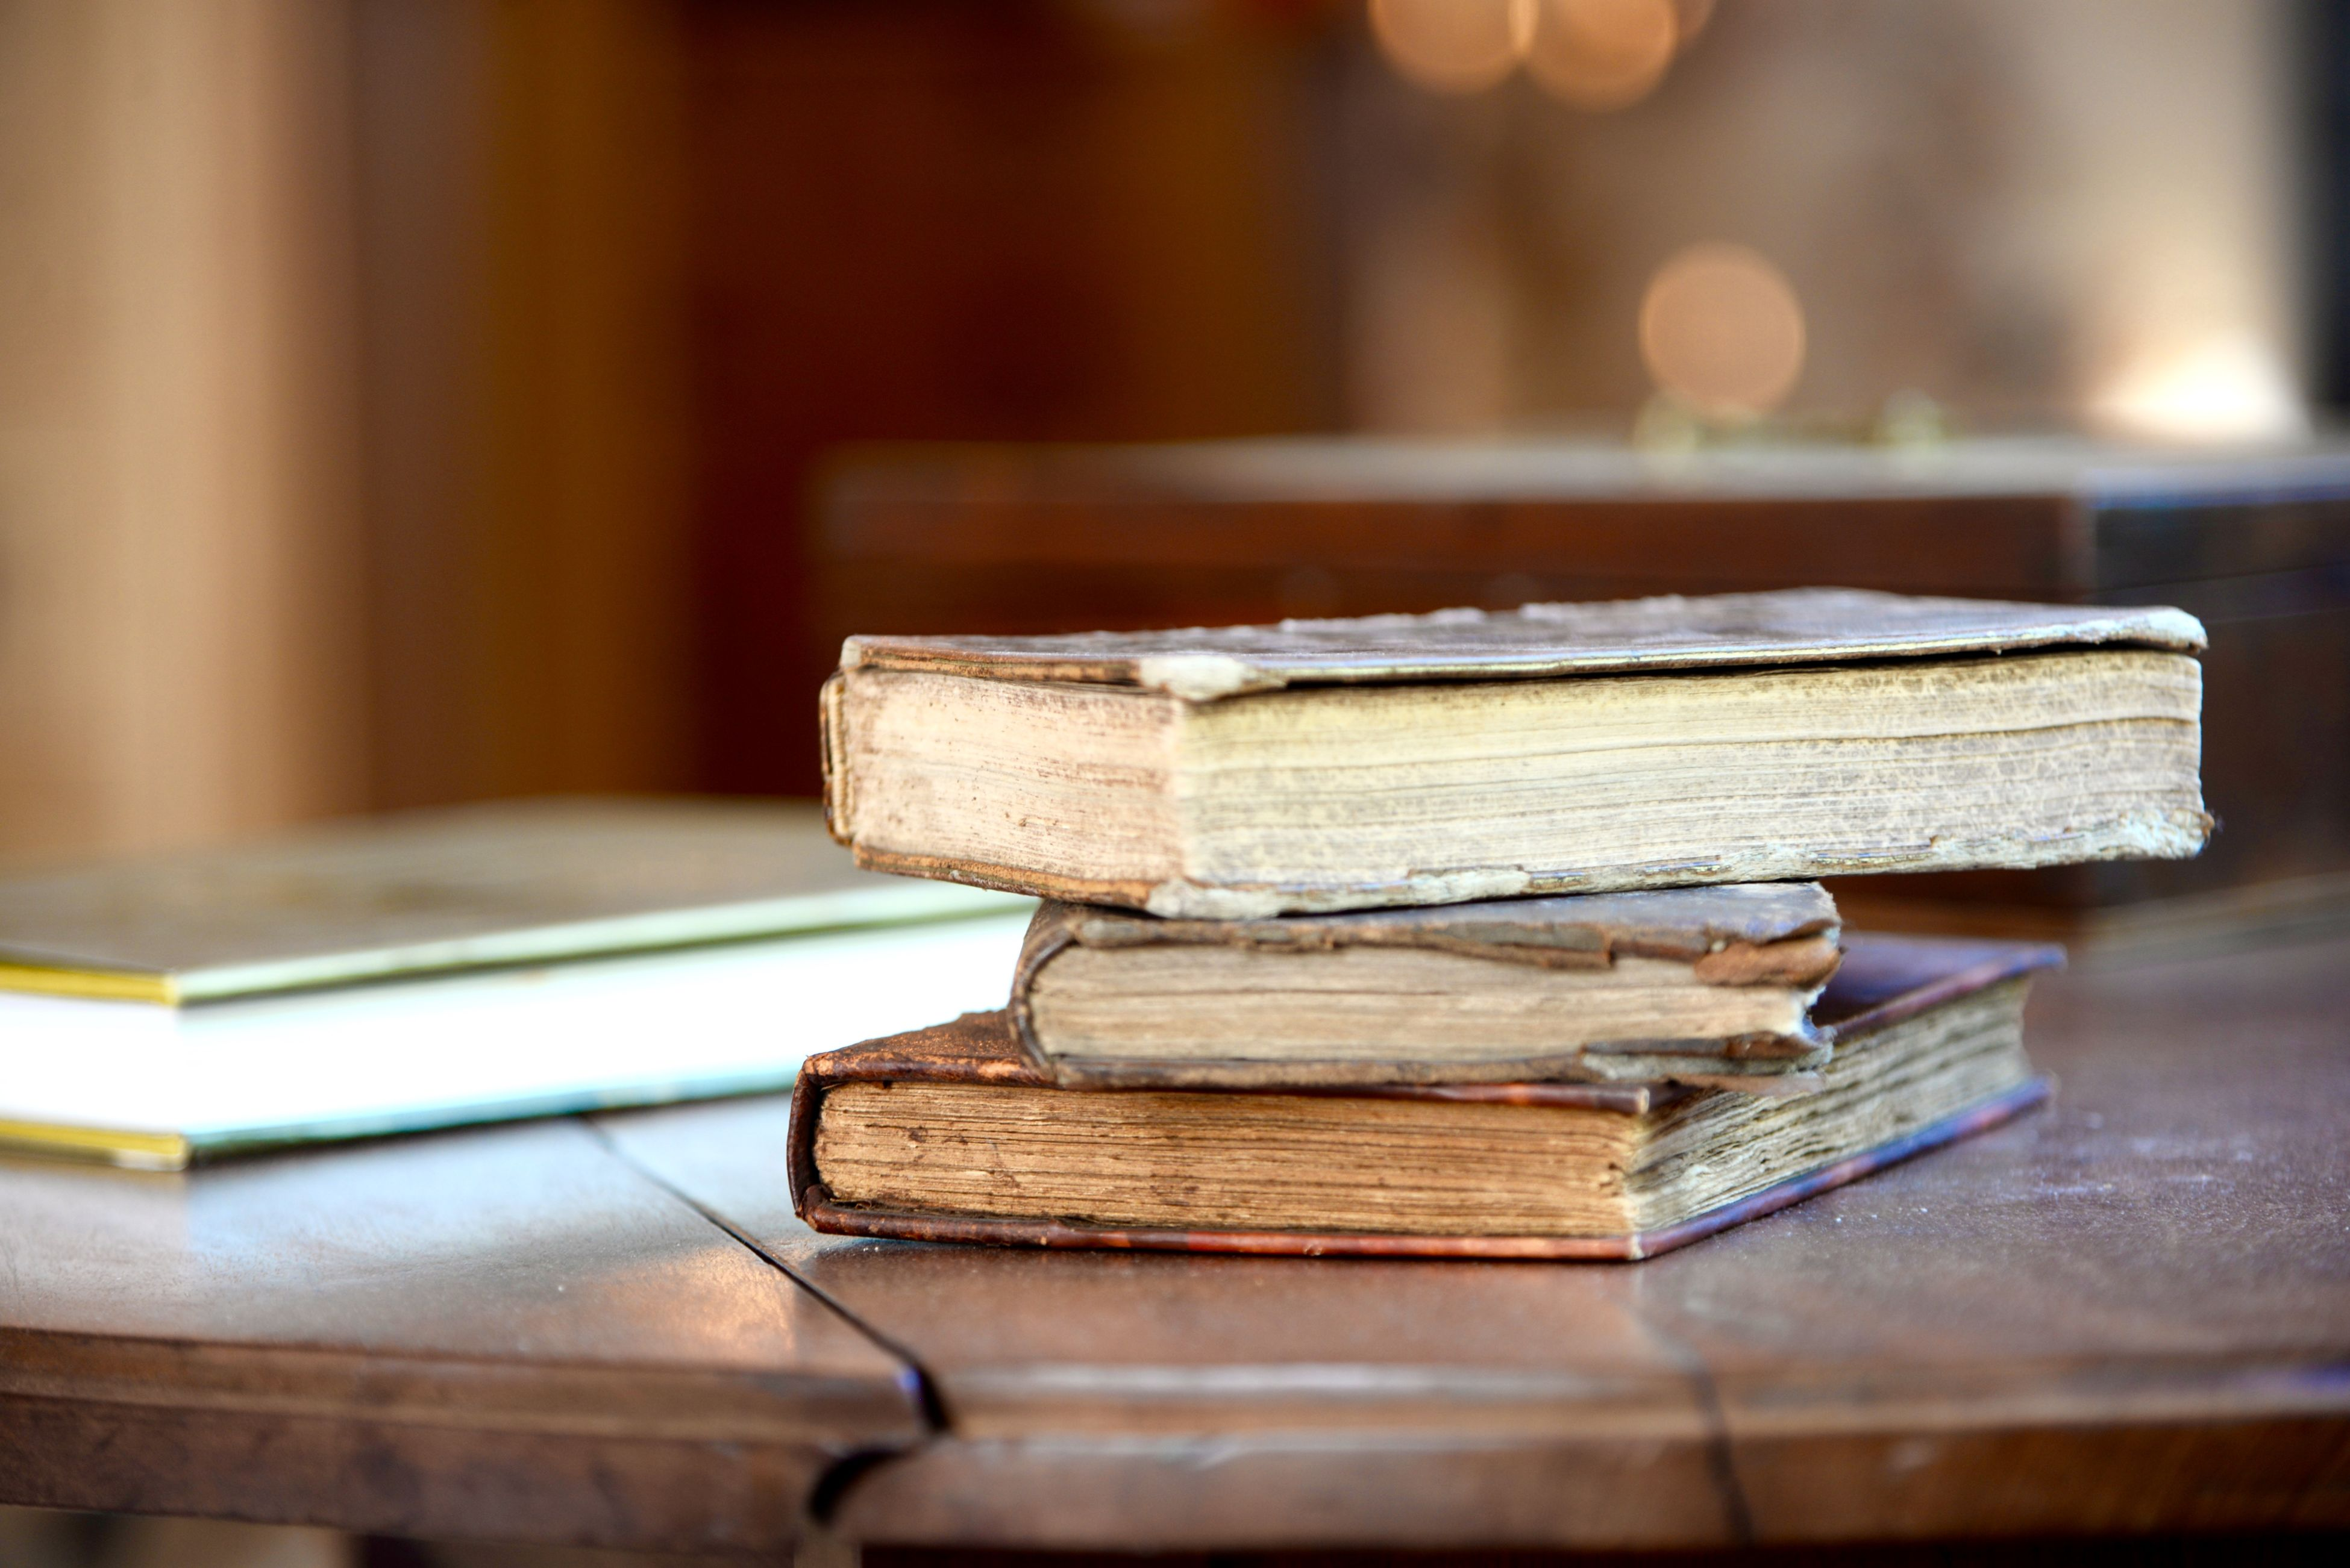 indoors, table, wood - material, still life, selective focus, close-up, focus on foreground, wooden, book, wood, no people, education, stack, absence, large group of objects, paper, group of objects, in a row, bench, pencil